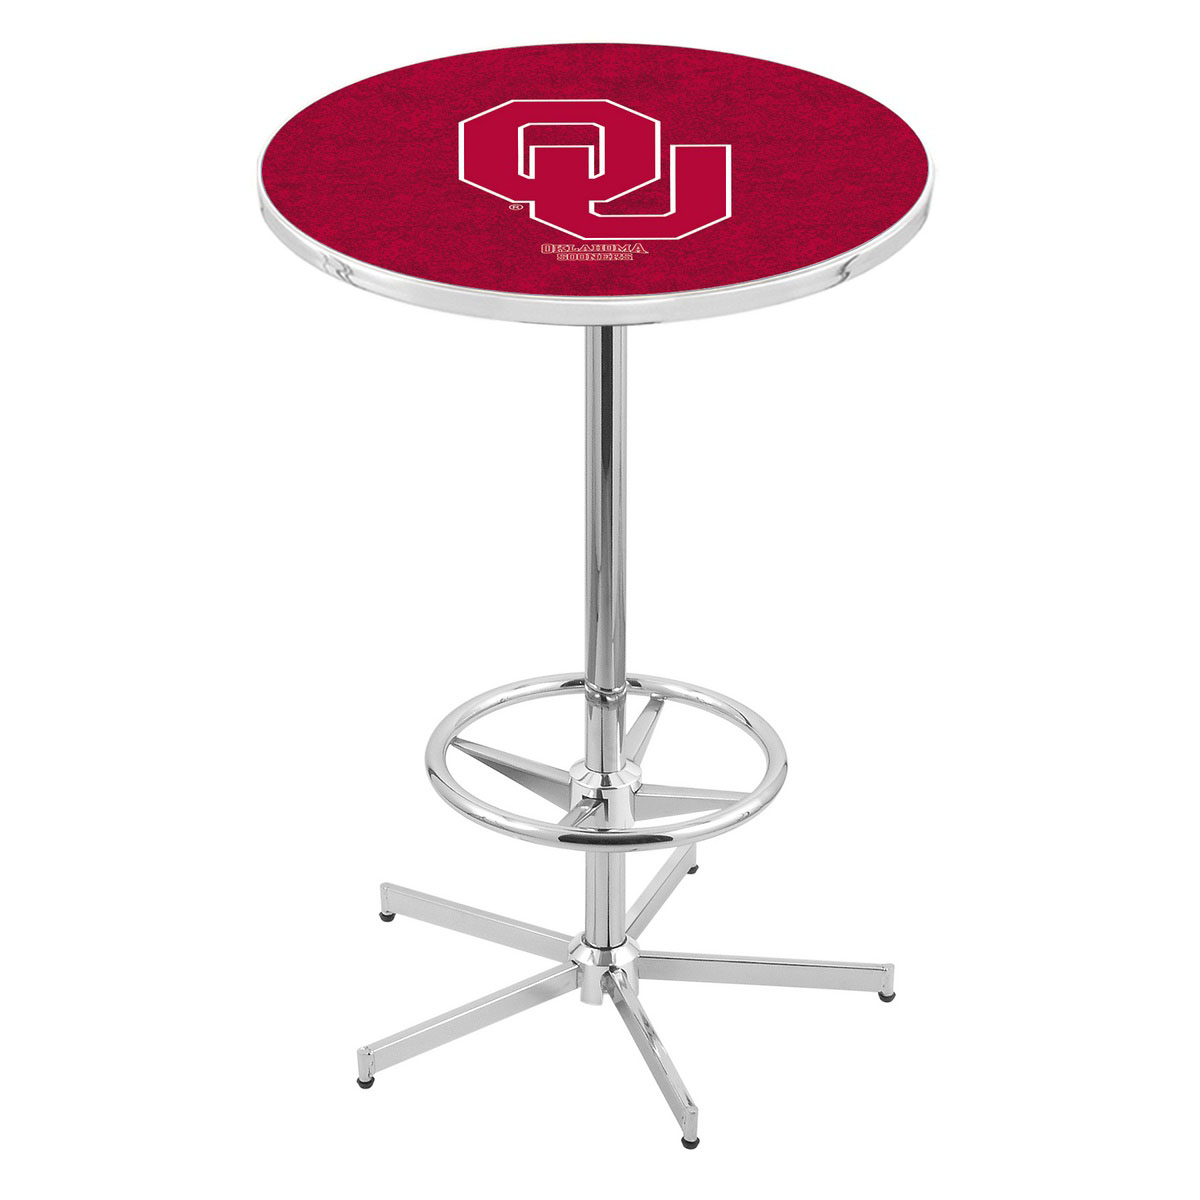 Impressive Chrome Oklahoma Pub Table Product Photo